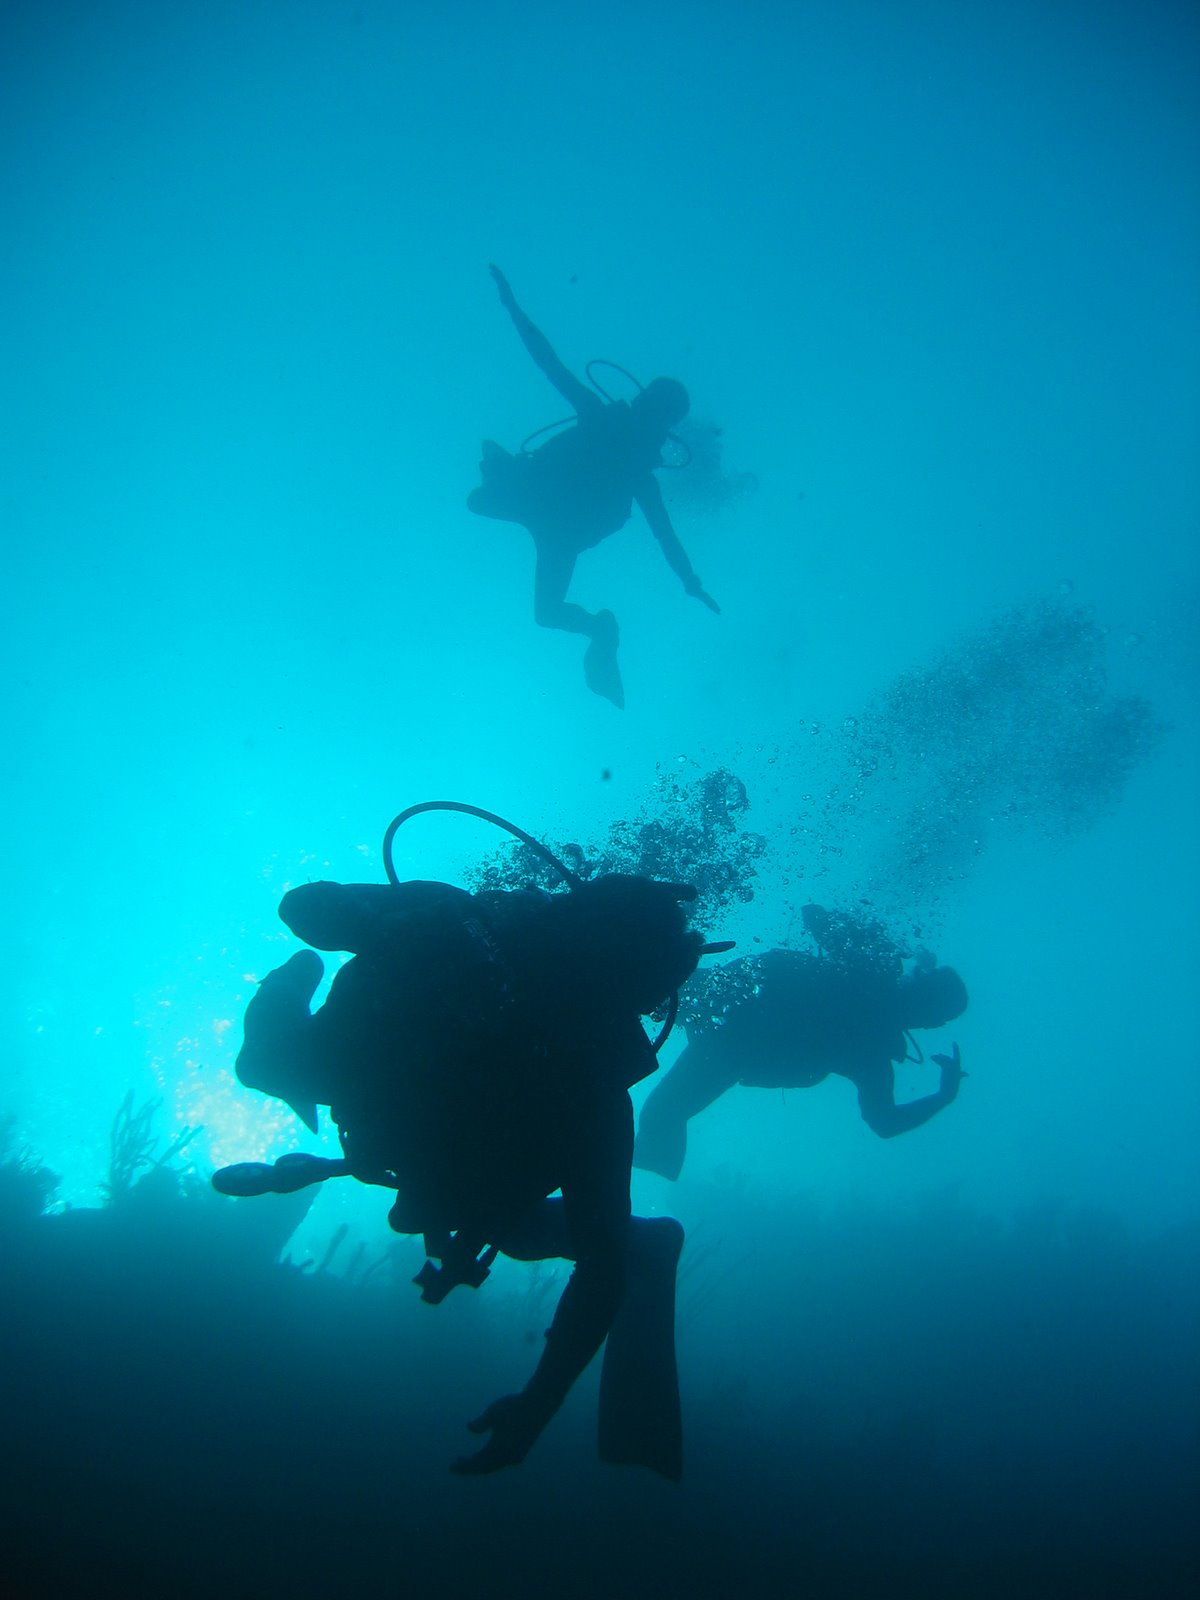 Daily Underwater Photo: Where to get your SCUBA certification